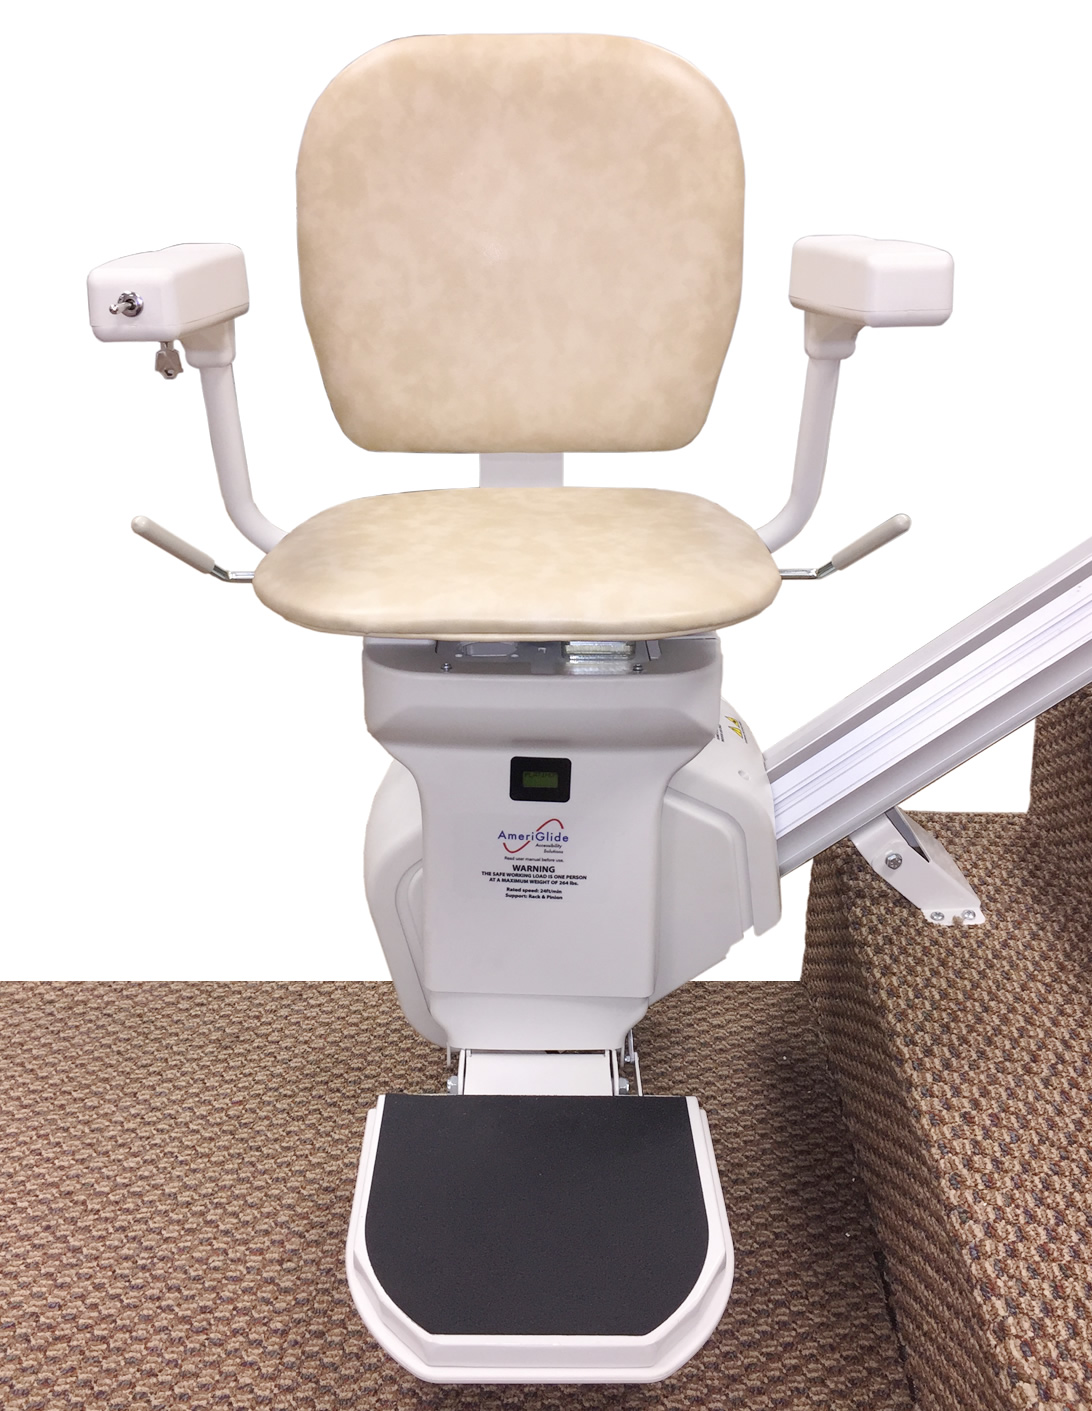 Stair Chair Lifts For Seniors Stair Lifts Ameriglide Stairlifts In Toronto On Gta